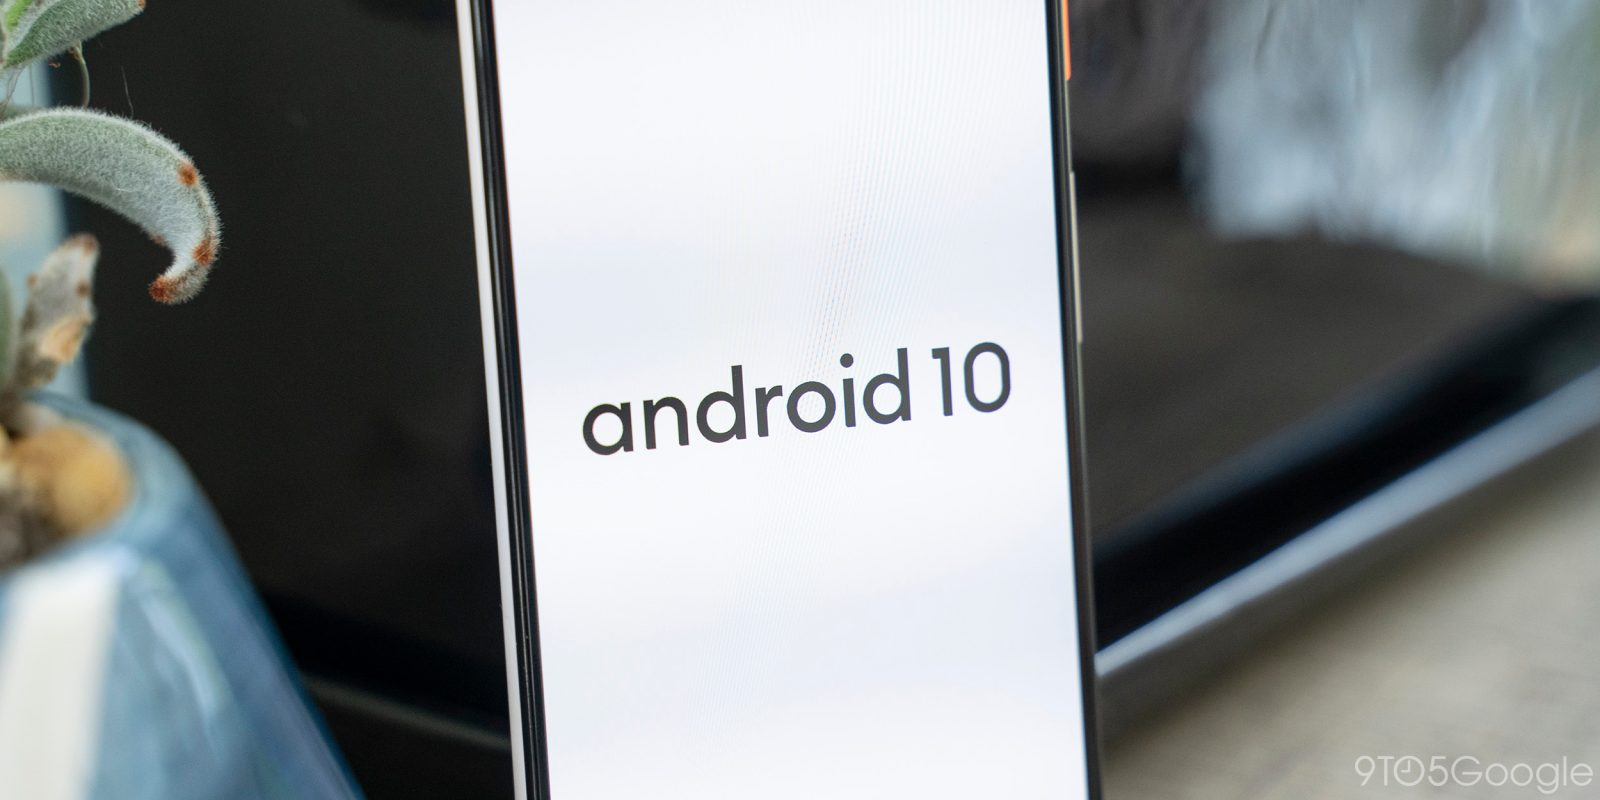 Nearly every Nokia smartphone will be updated to Android 10 starting this year